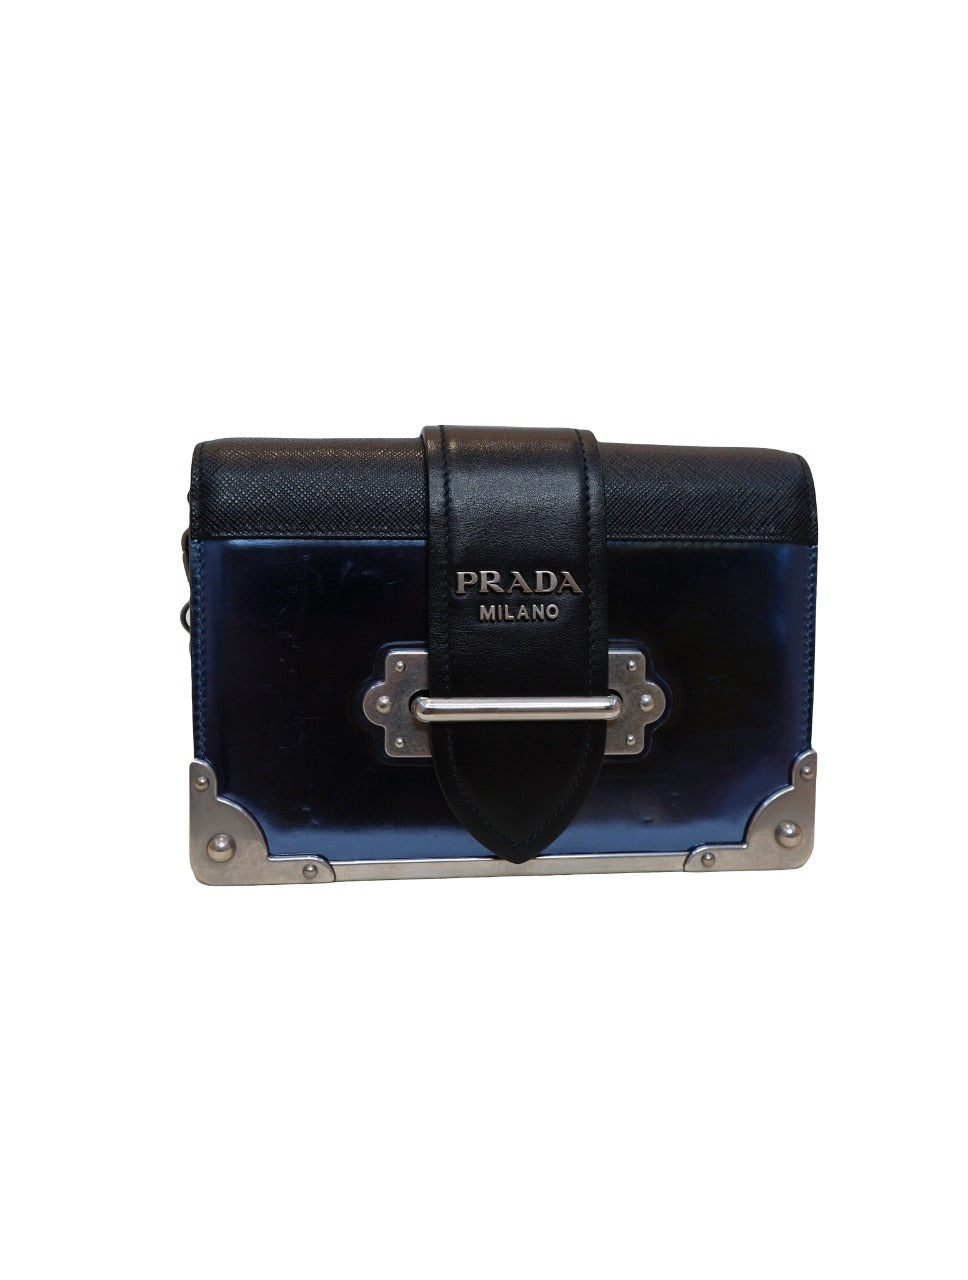 BLACK AND BLUE CALFSKIN & PATENT LEATHER CAHIER BAG